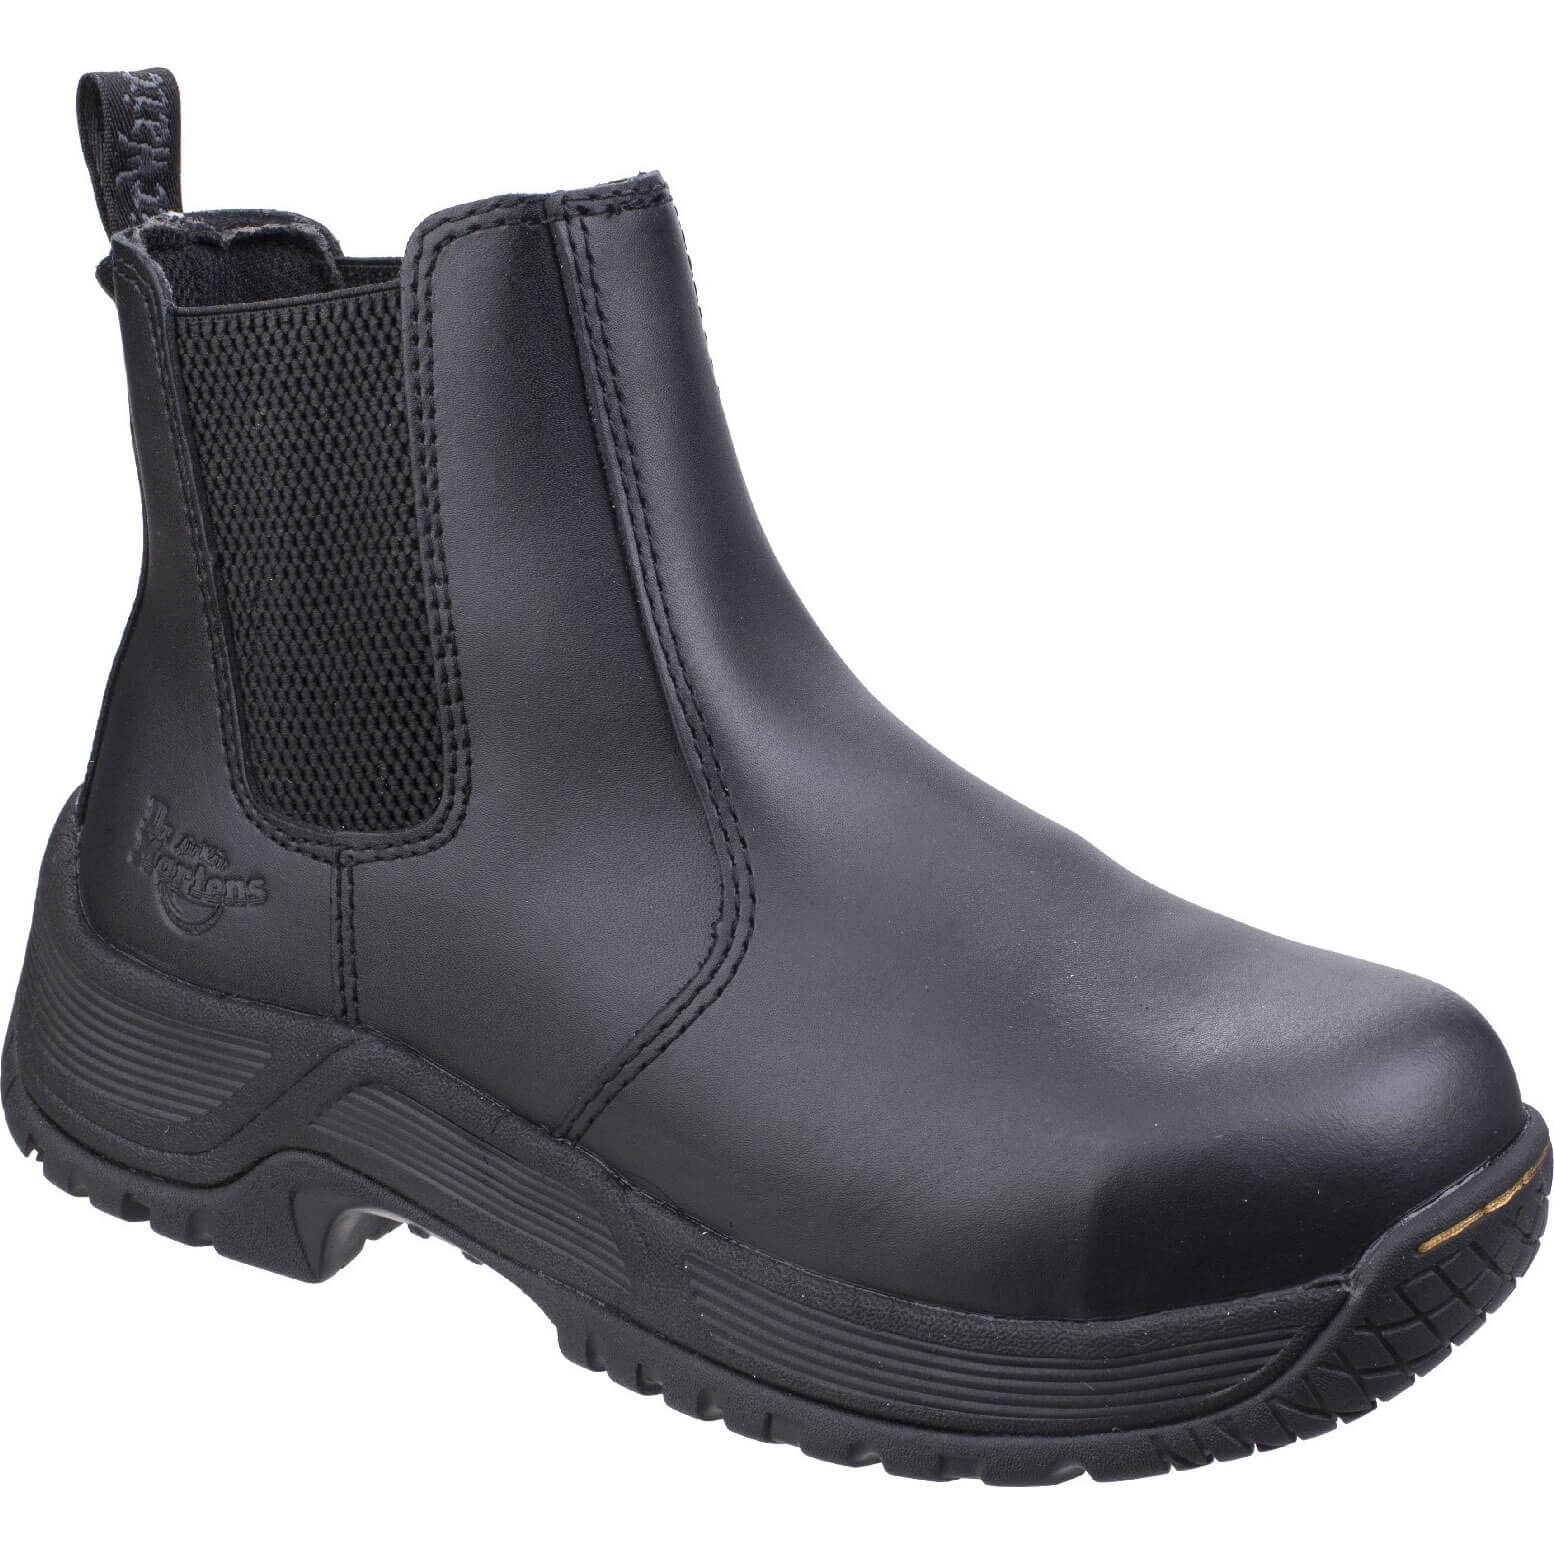 CHEAP Dr Martens Mens Drakelow Safety Boots Black Size 5 – Men's Footwear